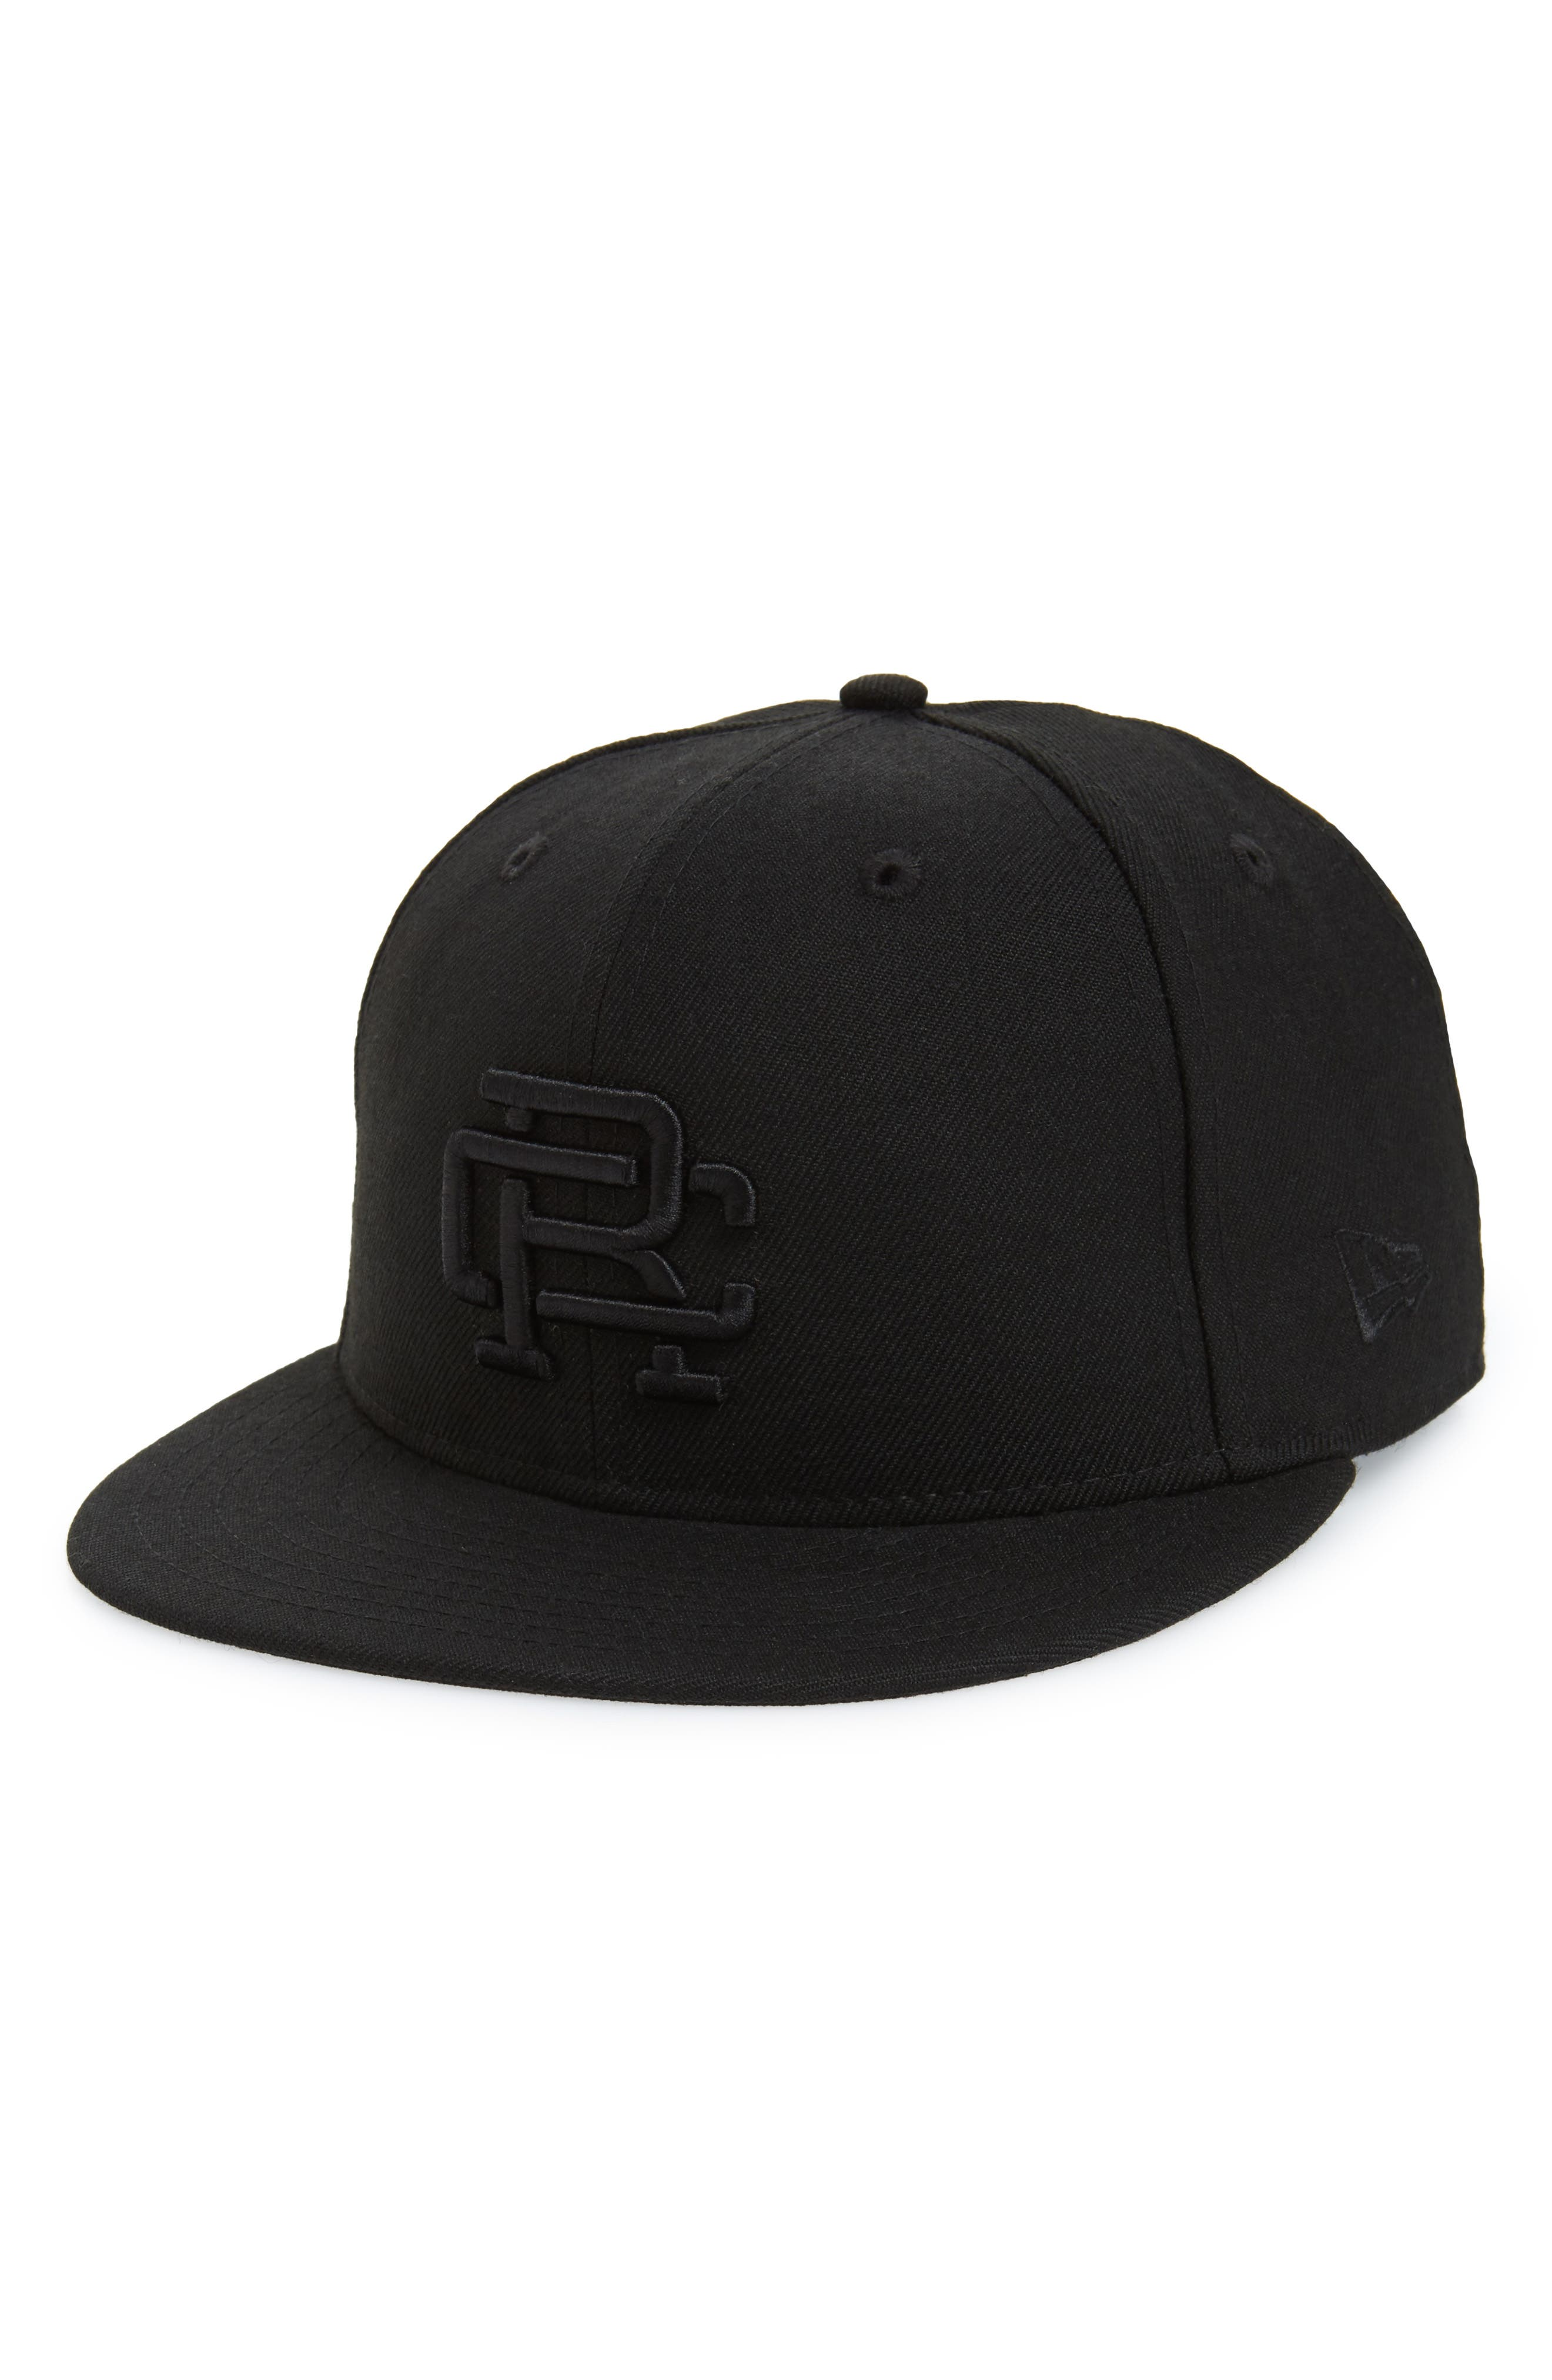 New Era Fitted Baseball Cap,                         Main,                         color, BLACK / BLACK